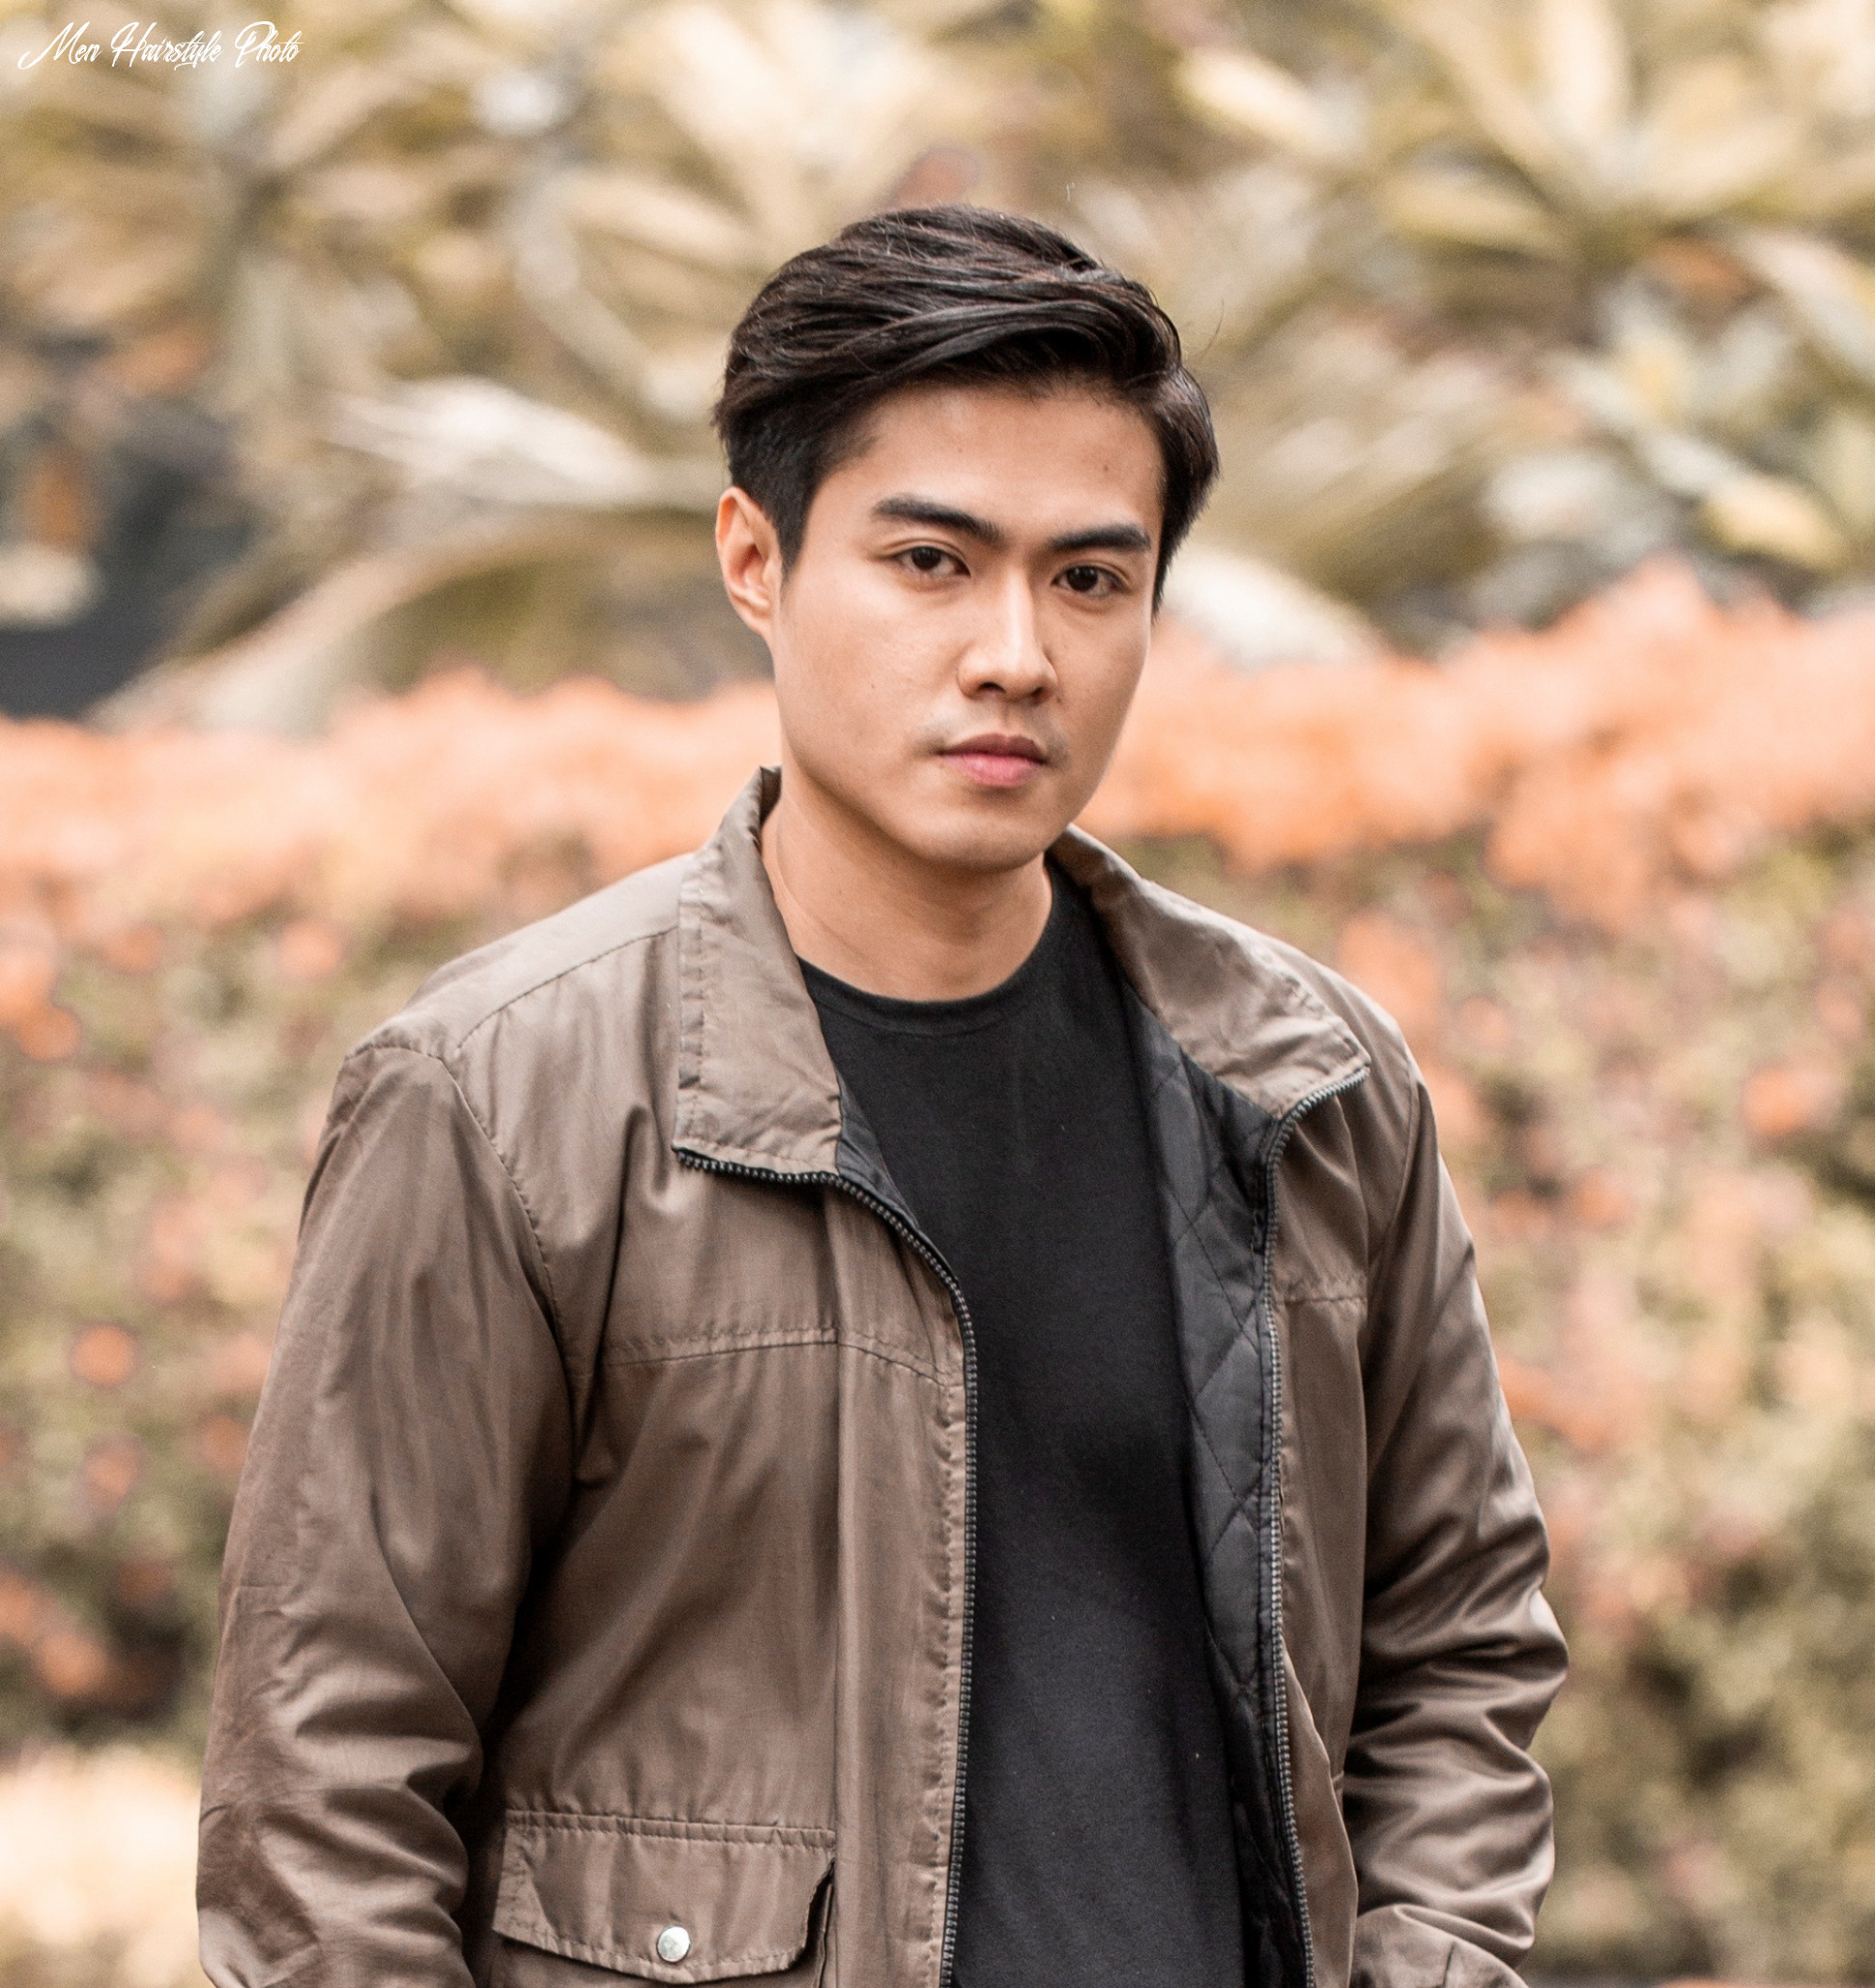 Hairstyles for Men Every Pinoy Can Wear   All Things Hair PH